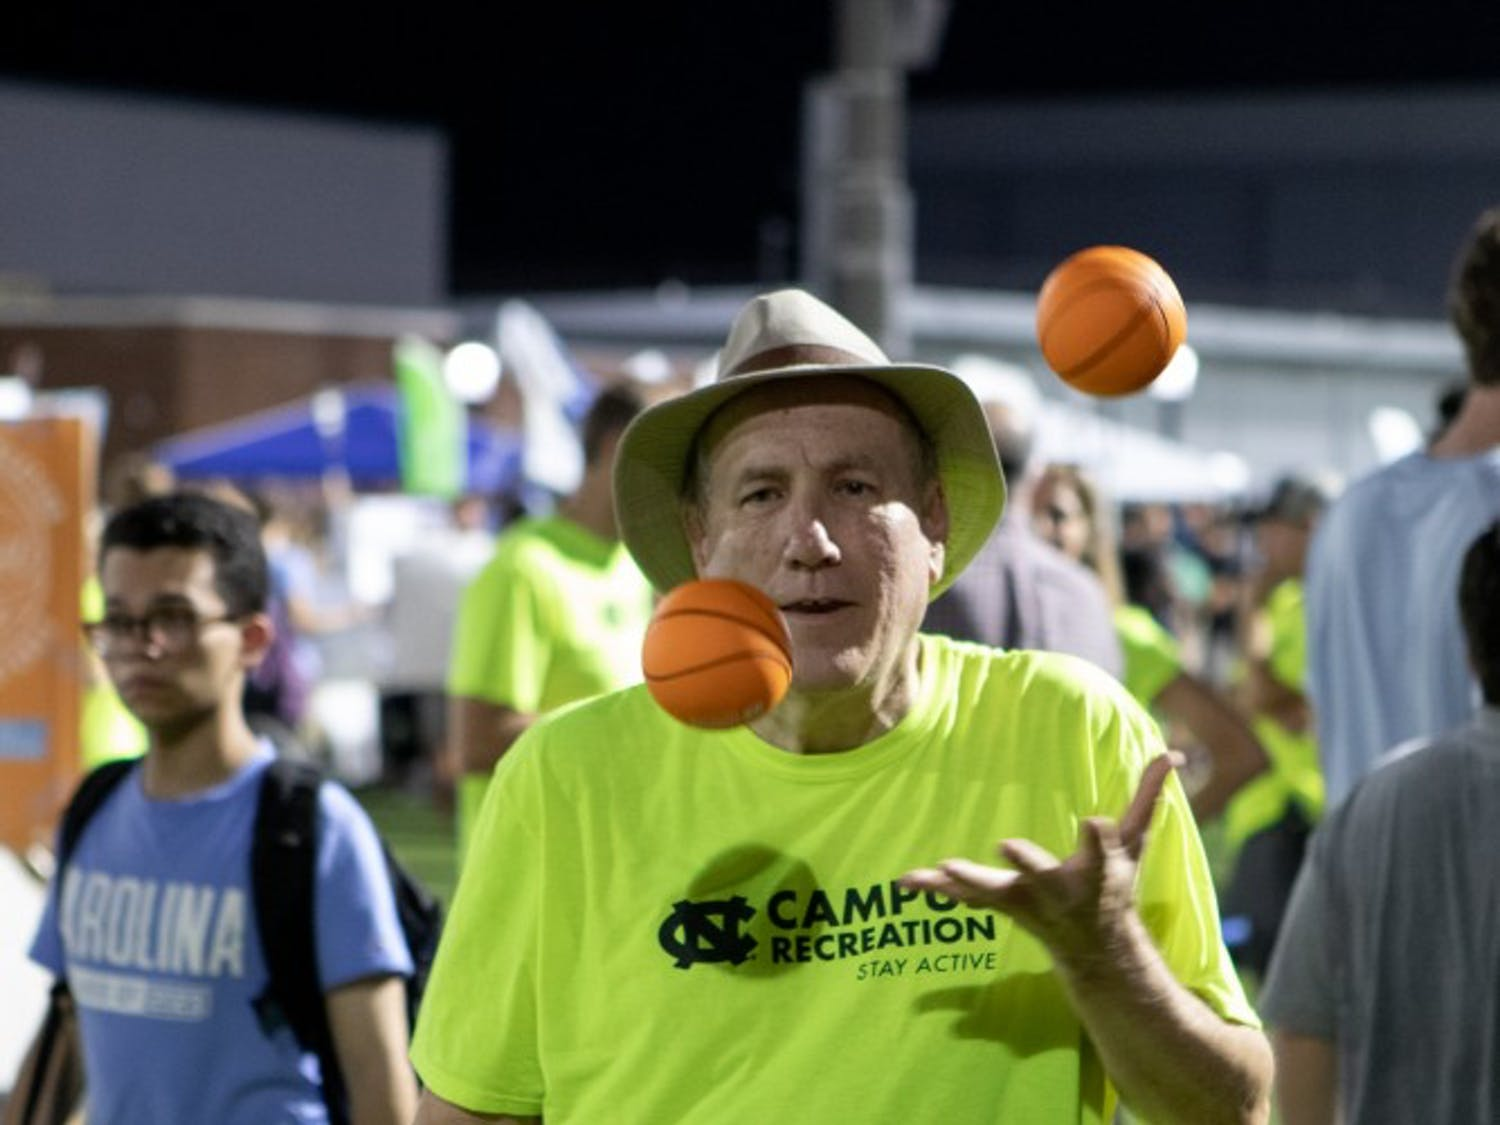 Bill Goa, Director of Campus Recreation, juggles during Fallfest on on Hooker Fields the evening of Sunday, August 18 2019.